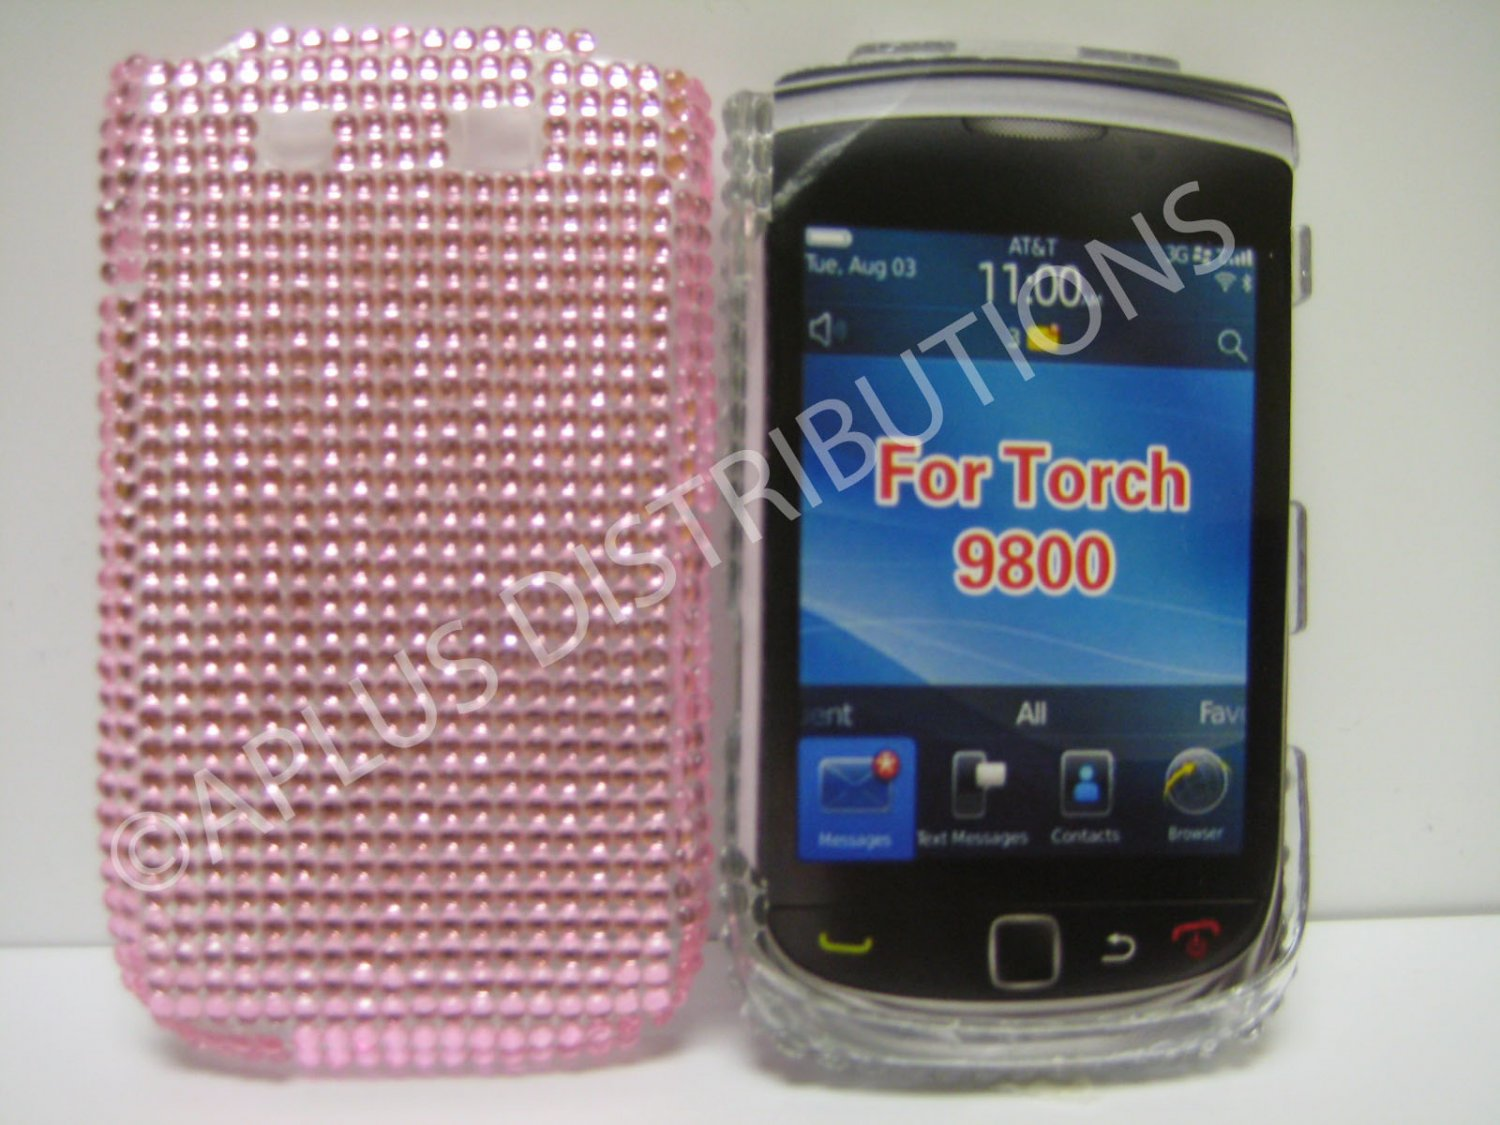 New Pink Solid Crystal Bling Diamond Case For Blackberry 9800 - (0100)